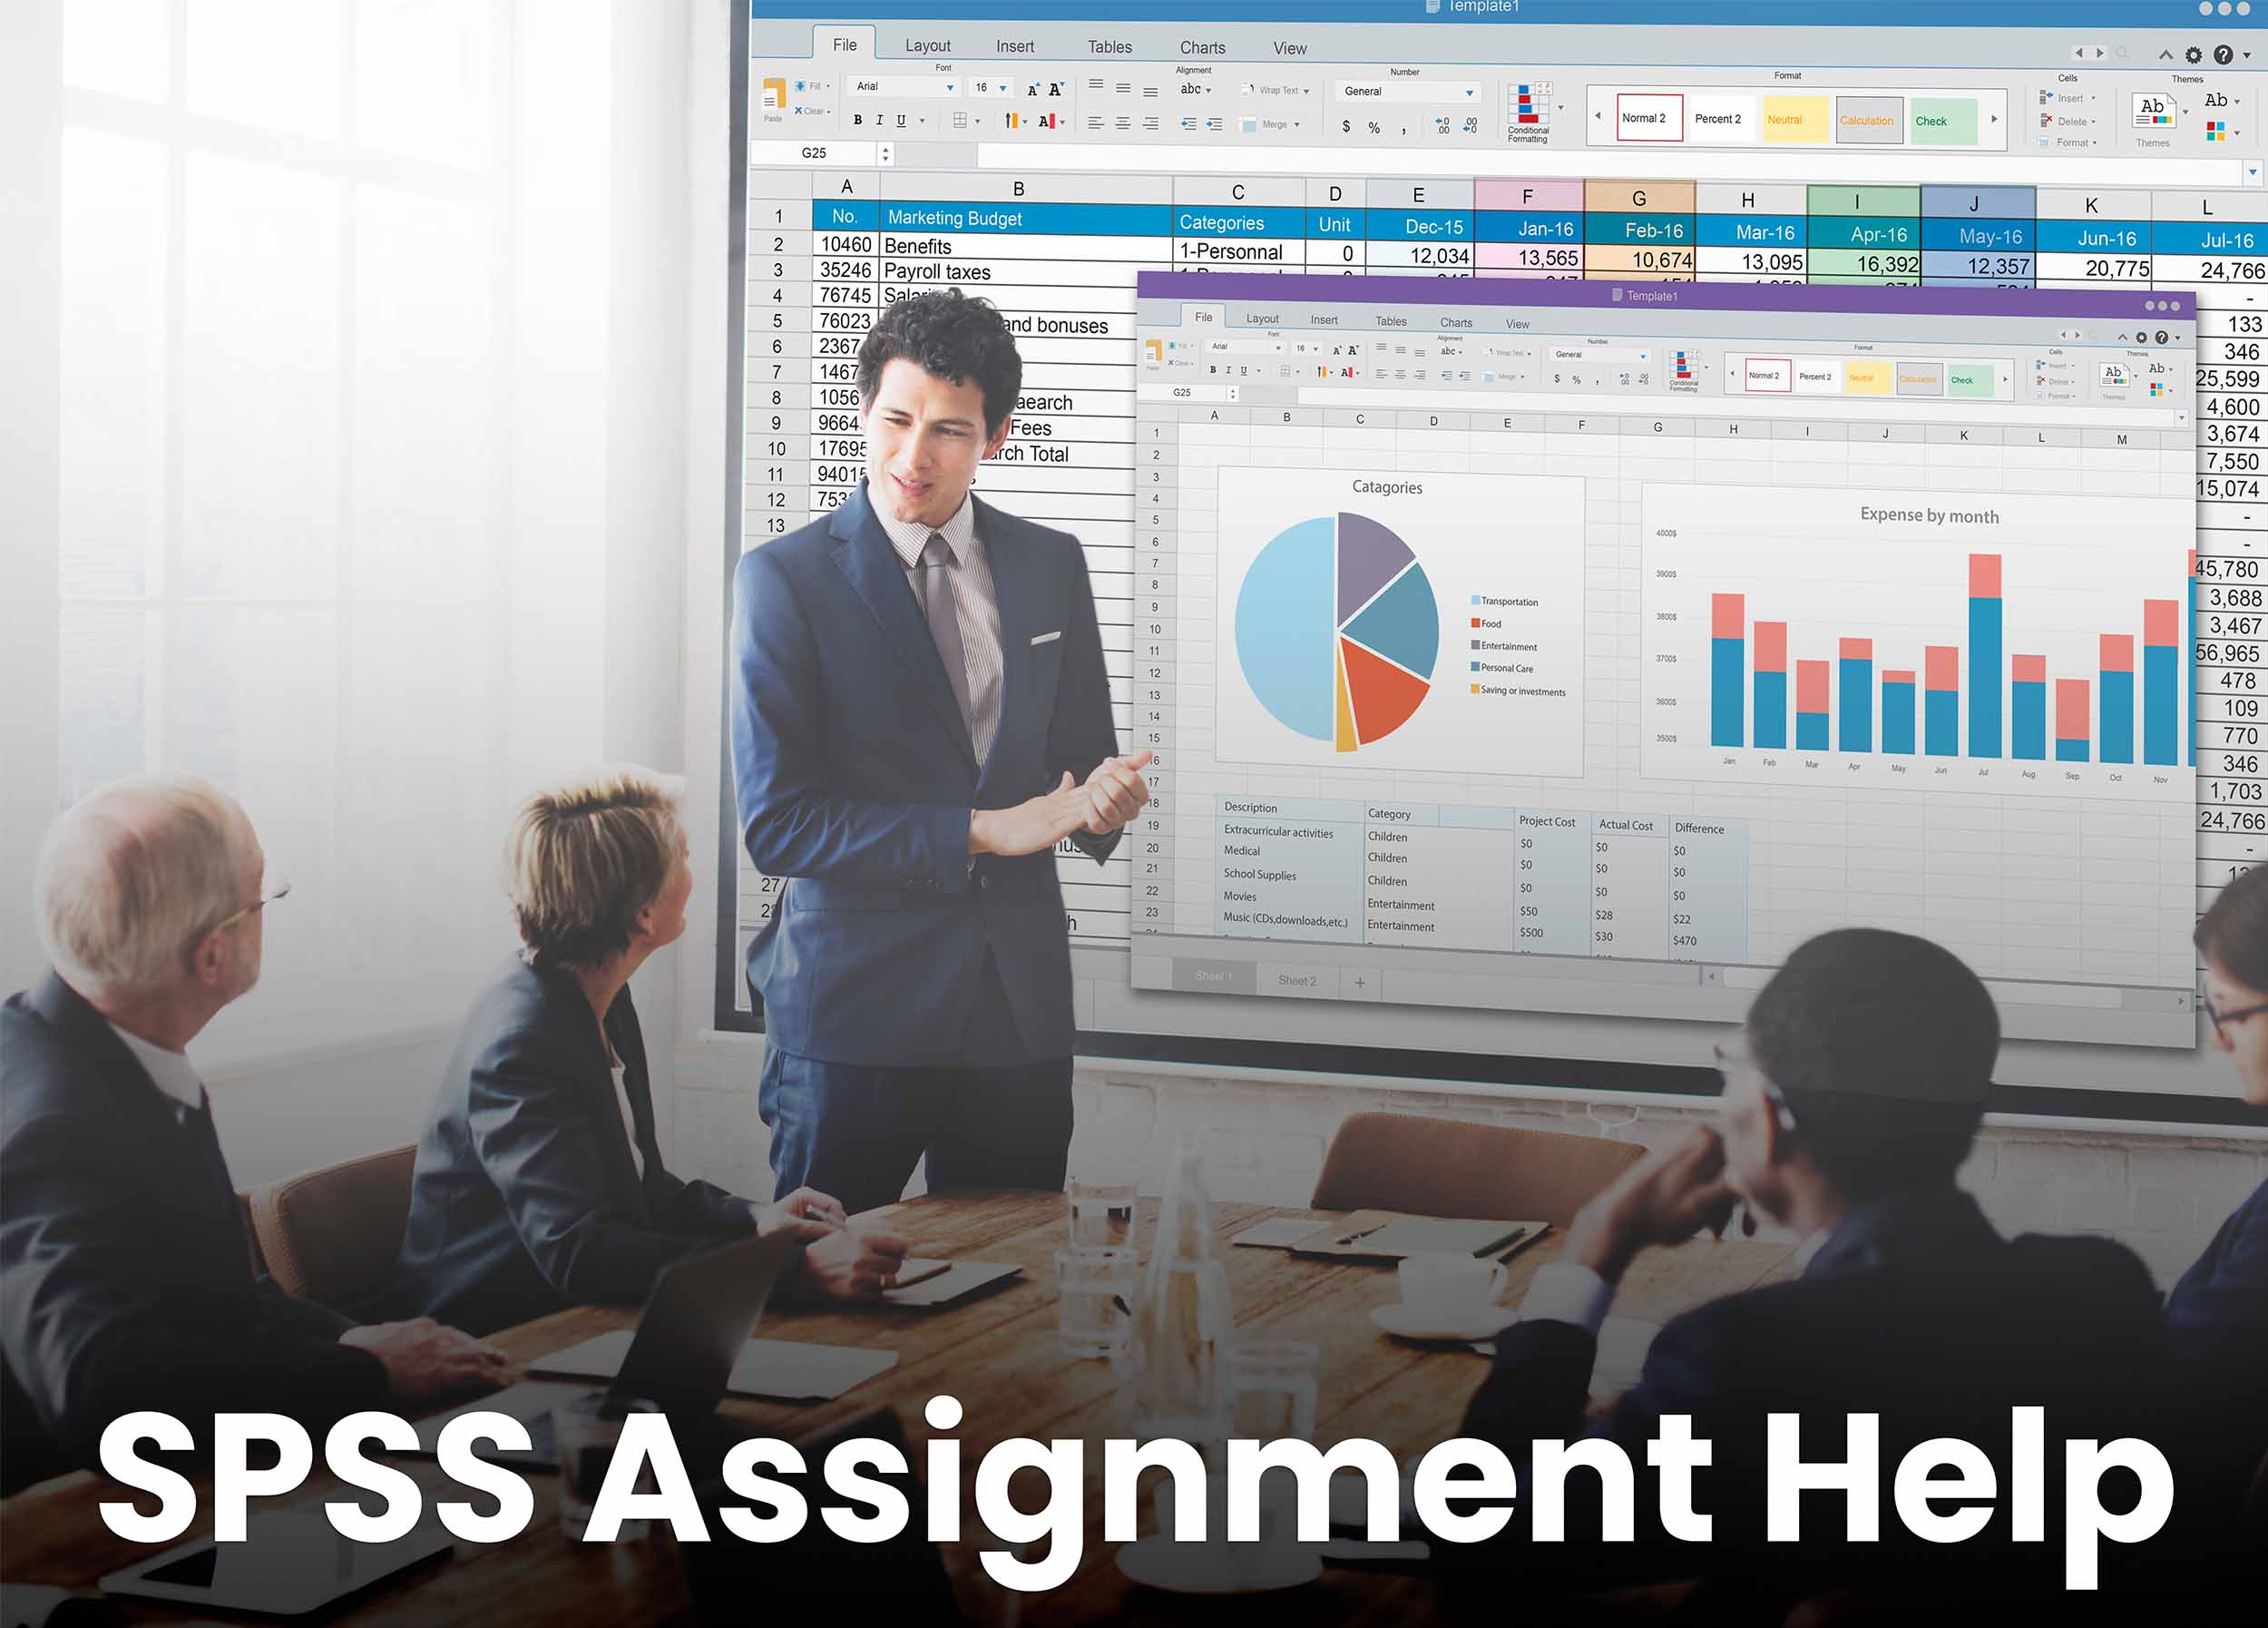 SPSS Tutor Statistical Consulting Service and Assignment Help